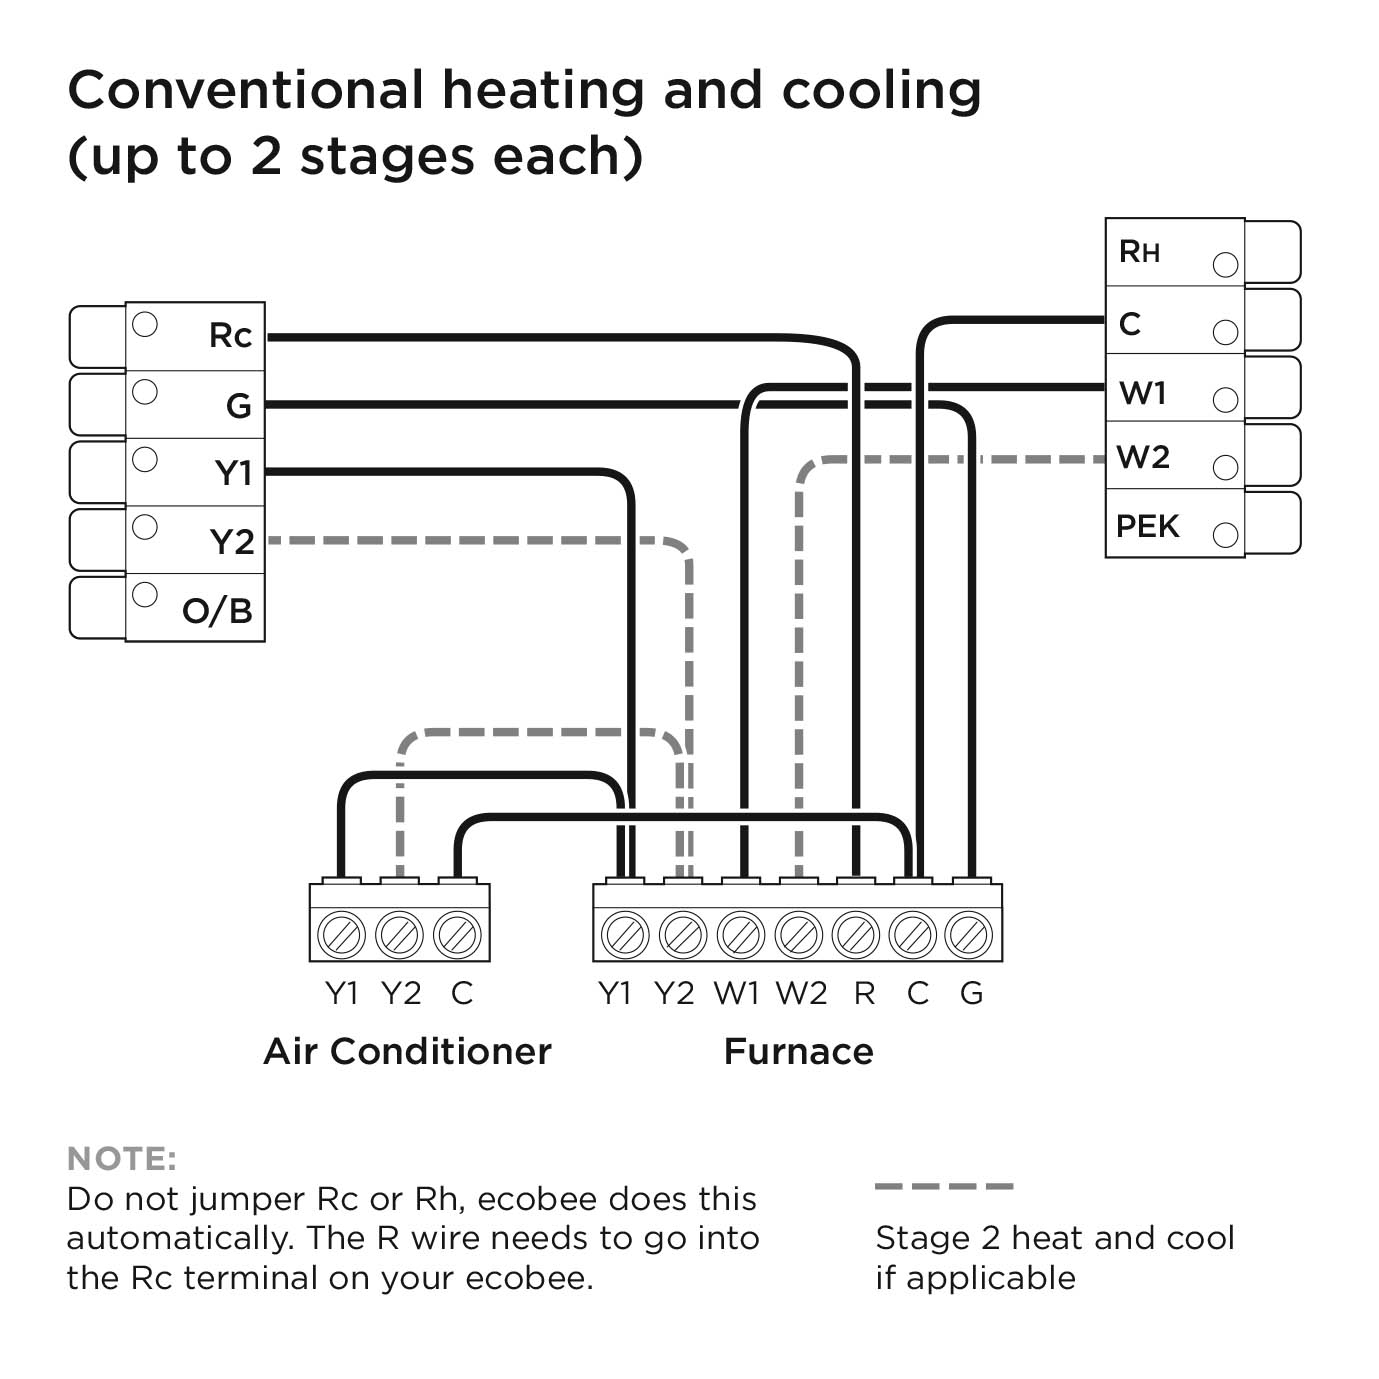 Ecobee3 Lite Wiring Diagrams – Ecobee Support - Nest Thermostat Wiring Diagram For 2 Stage Cooling 2 Stages Heat